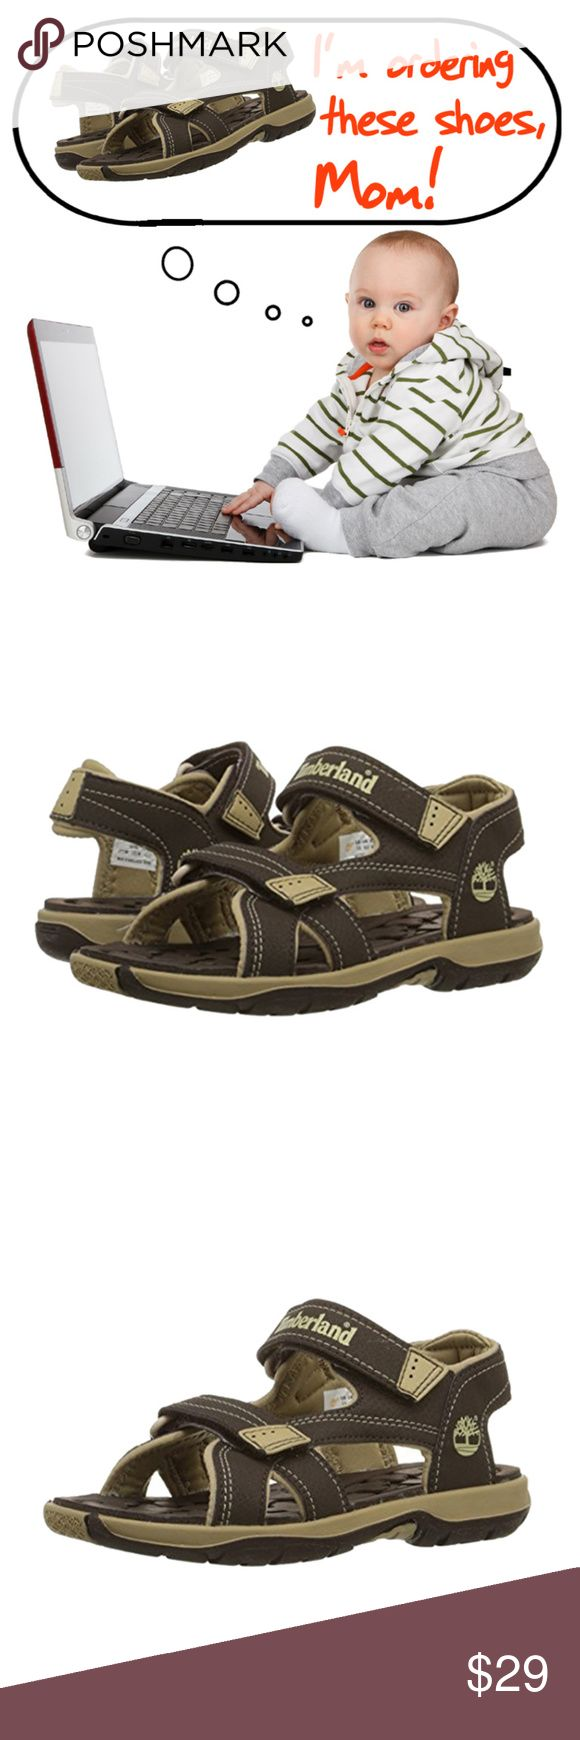 Timberland Mad River 2 Strap Baby Boy Sandals Order these Timberland Mad River 2 Strap Sandals for your baby before he does.  Material: Synthetic sole and upper.  Features: Water-friendly athletic sandal featuring textured footbed and two adjustable straps with hook-and-loop closures, EVA foam footbed with odor-control properties, Non-marking outsole  Color: Brown Size: US 4M Toddler's, EU 20, JP 12 , UK 3.5 Condition: Brand New, manufacturer packaged and sealed. Timberland Shoes Sandals…